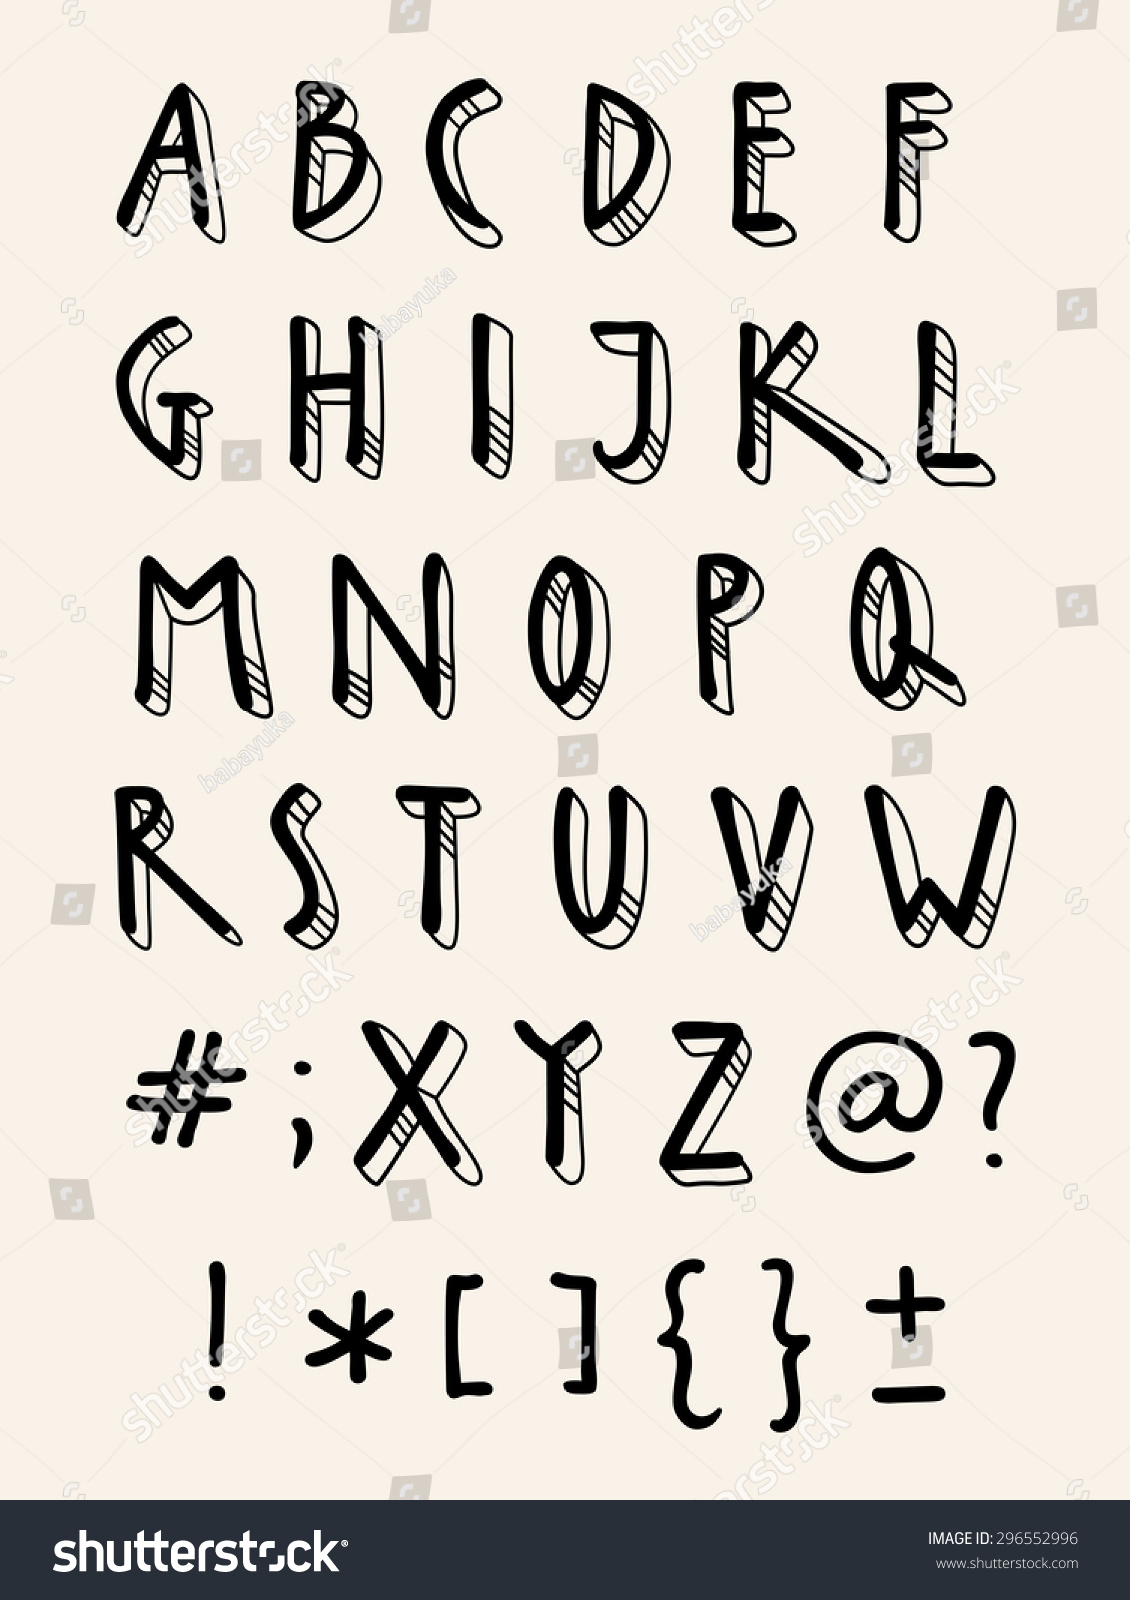 Worksheets A To Z Stylish Font Style vector handwriting doodle alphabet artistic hand stock drawn stylish font design template elements letters